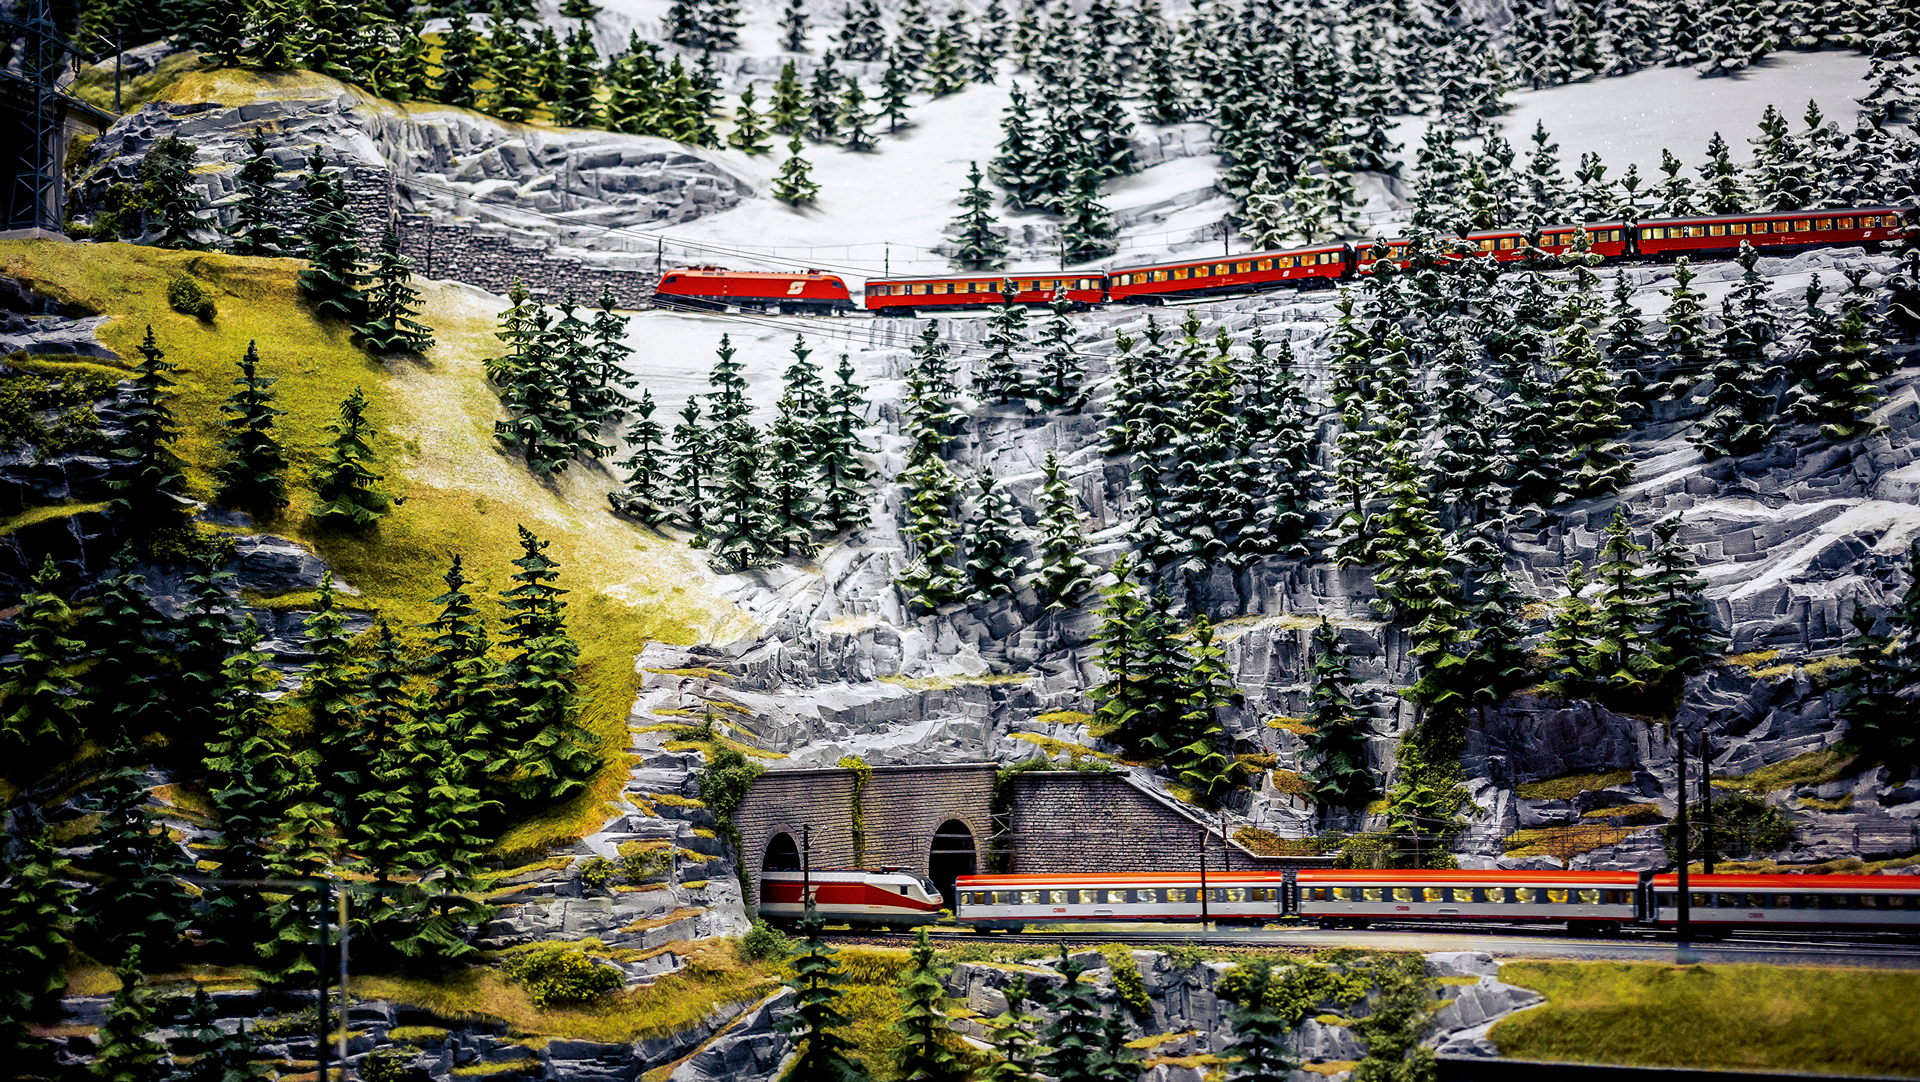 Märklin model train, Alps in miniature, TraumWerk © Dr. Ing. h.c. F. Porsche AG